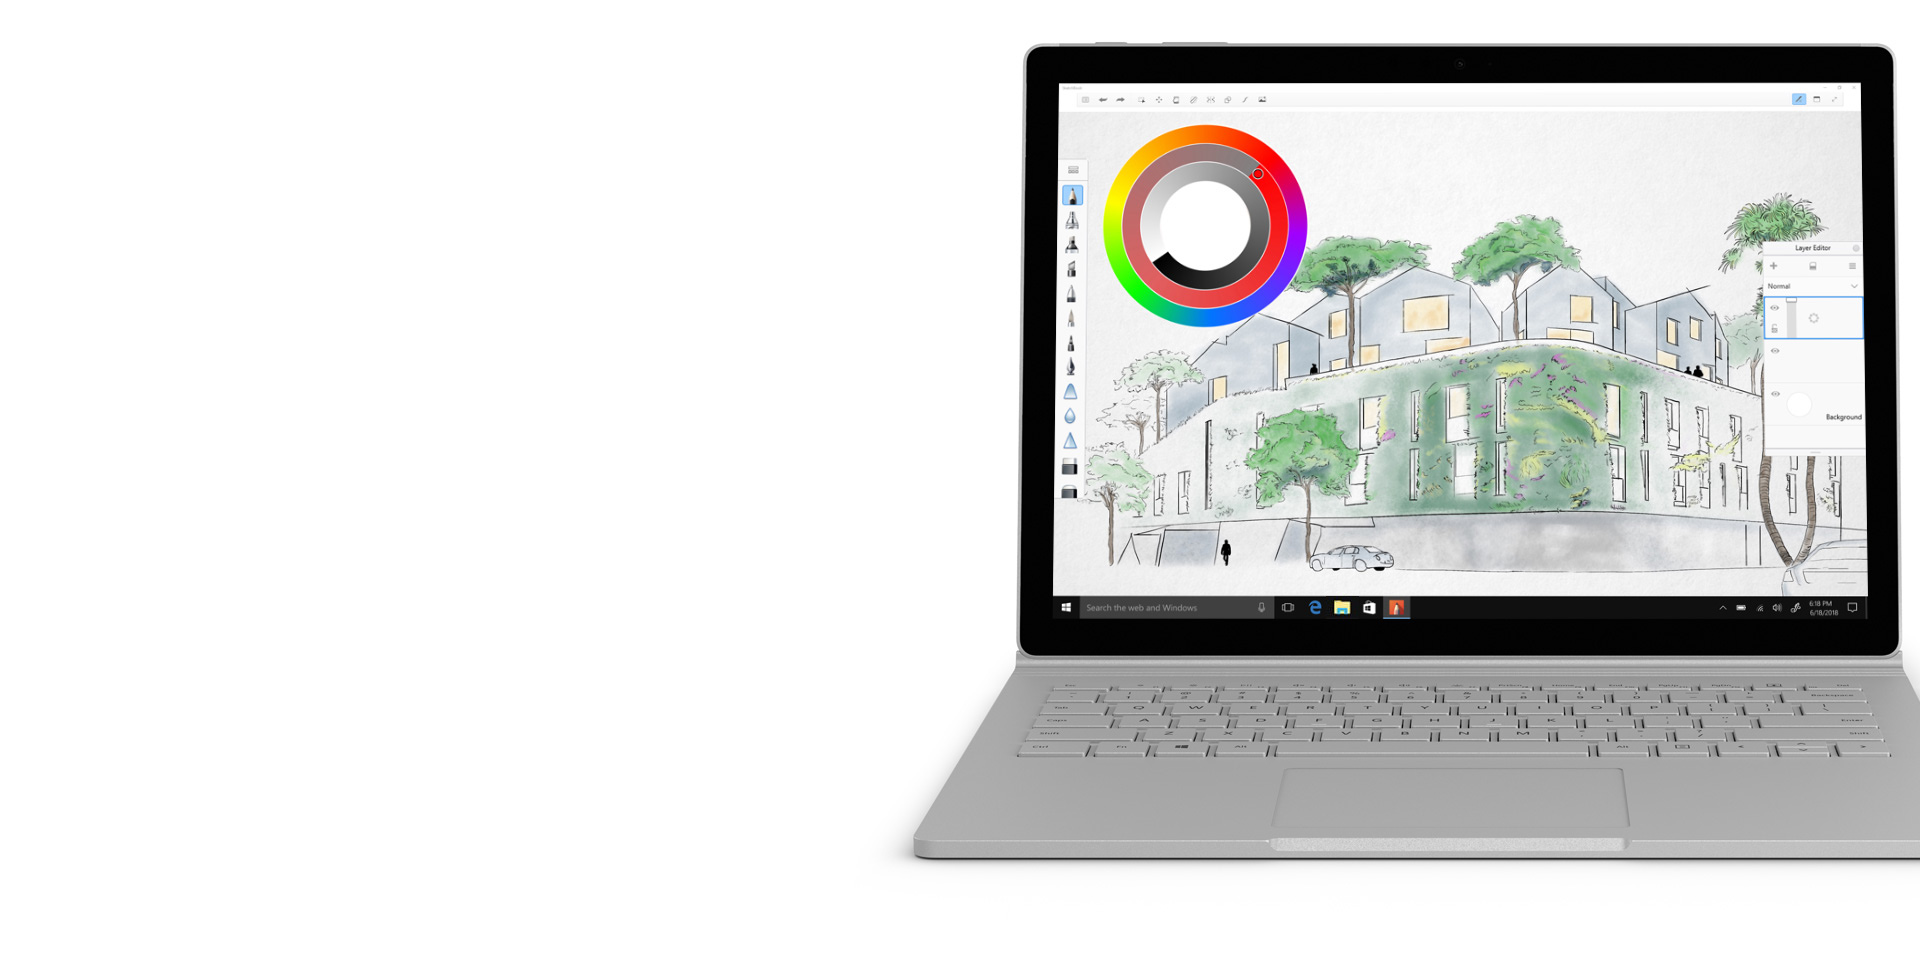 Autodesk SketchBook on a Surface Book 2 display